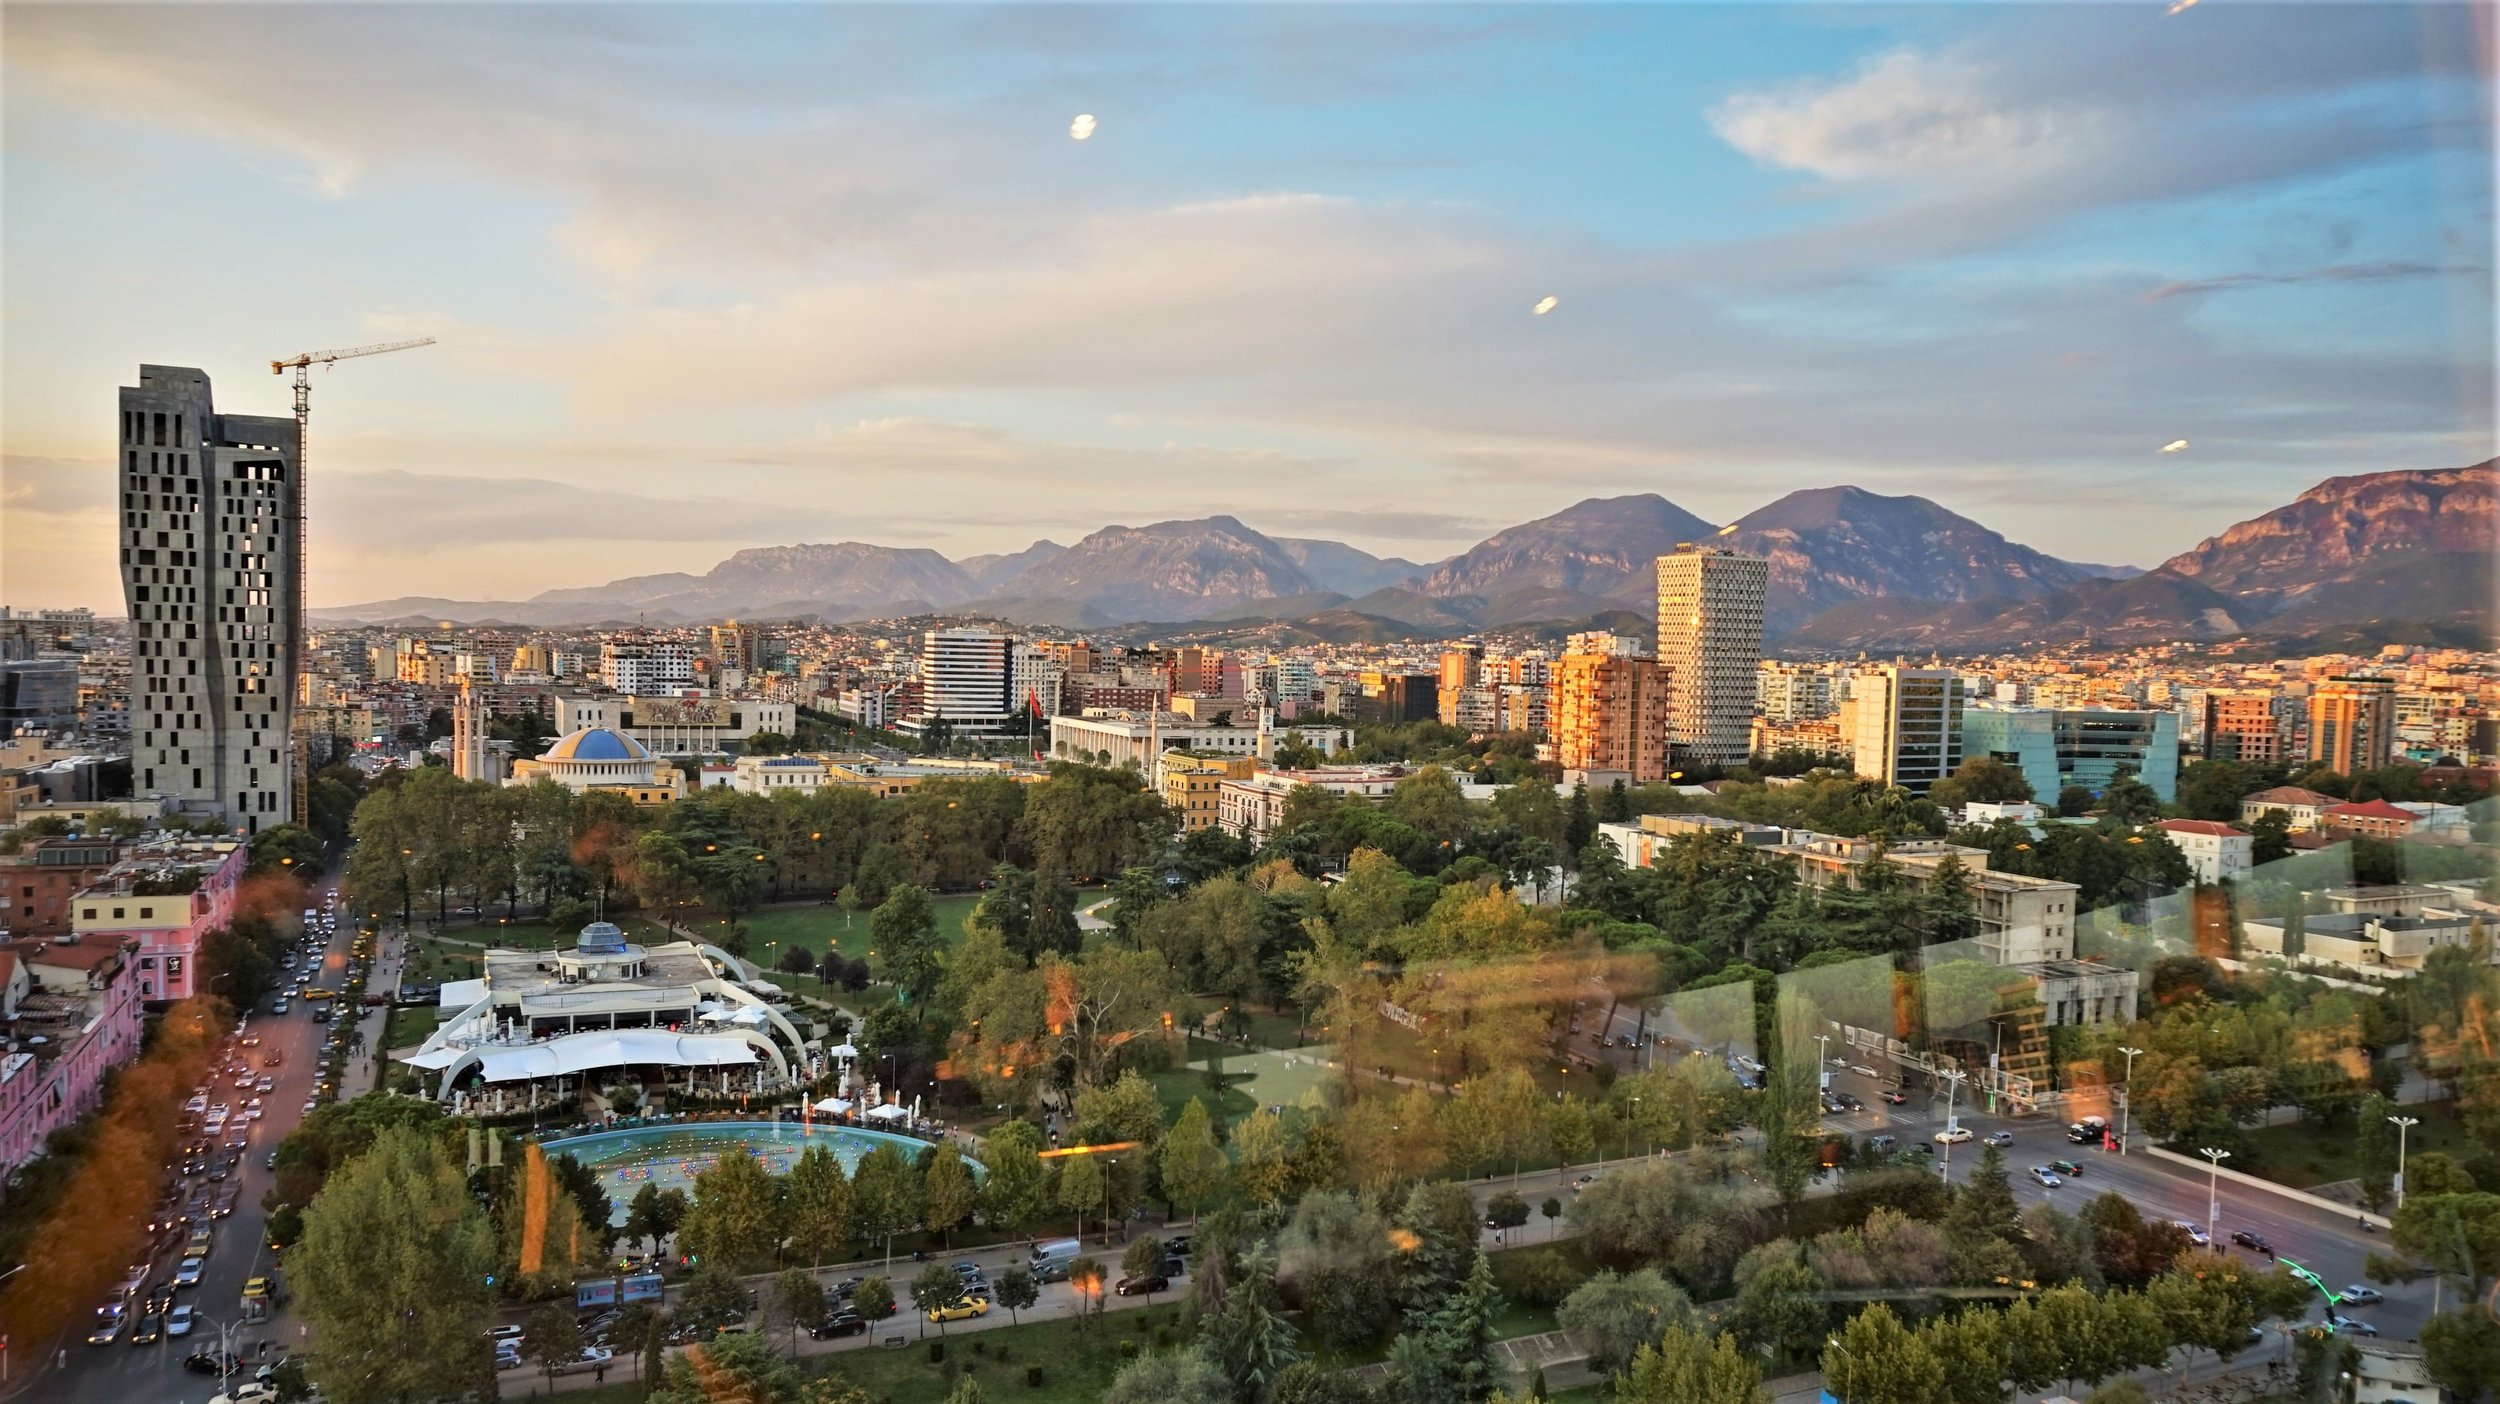 tirana things to do. City views from sky tower tirana